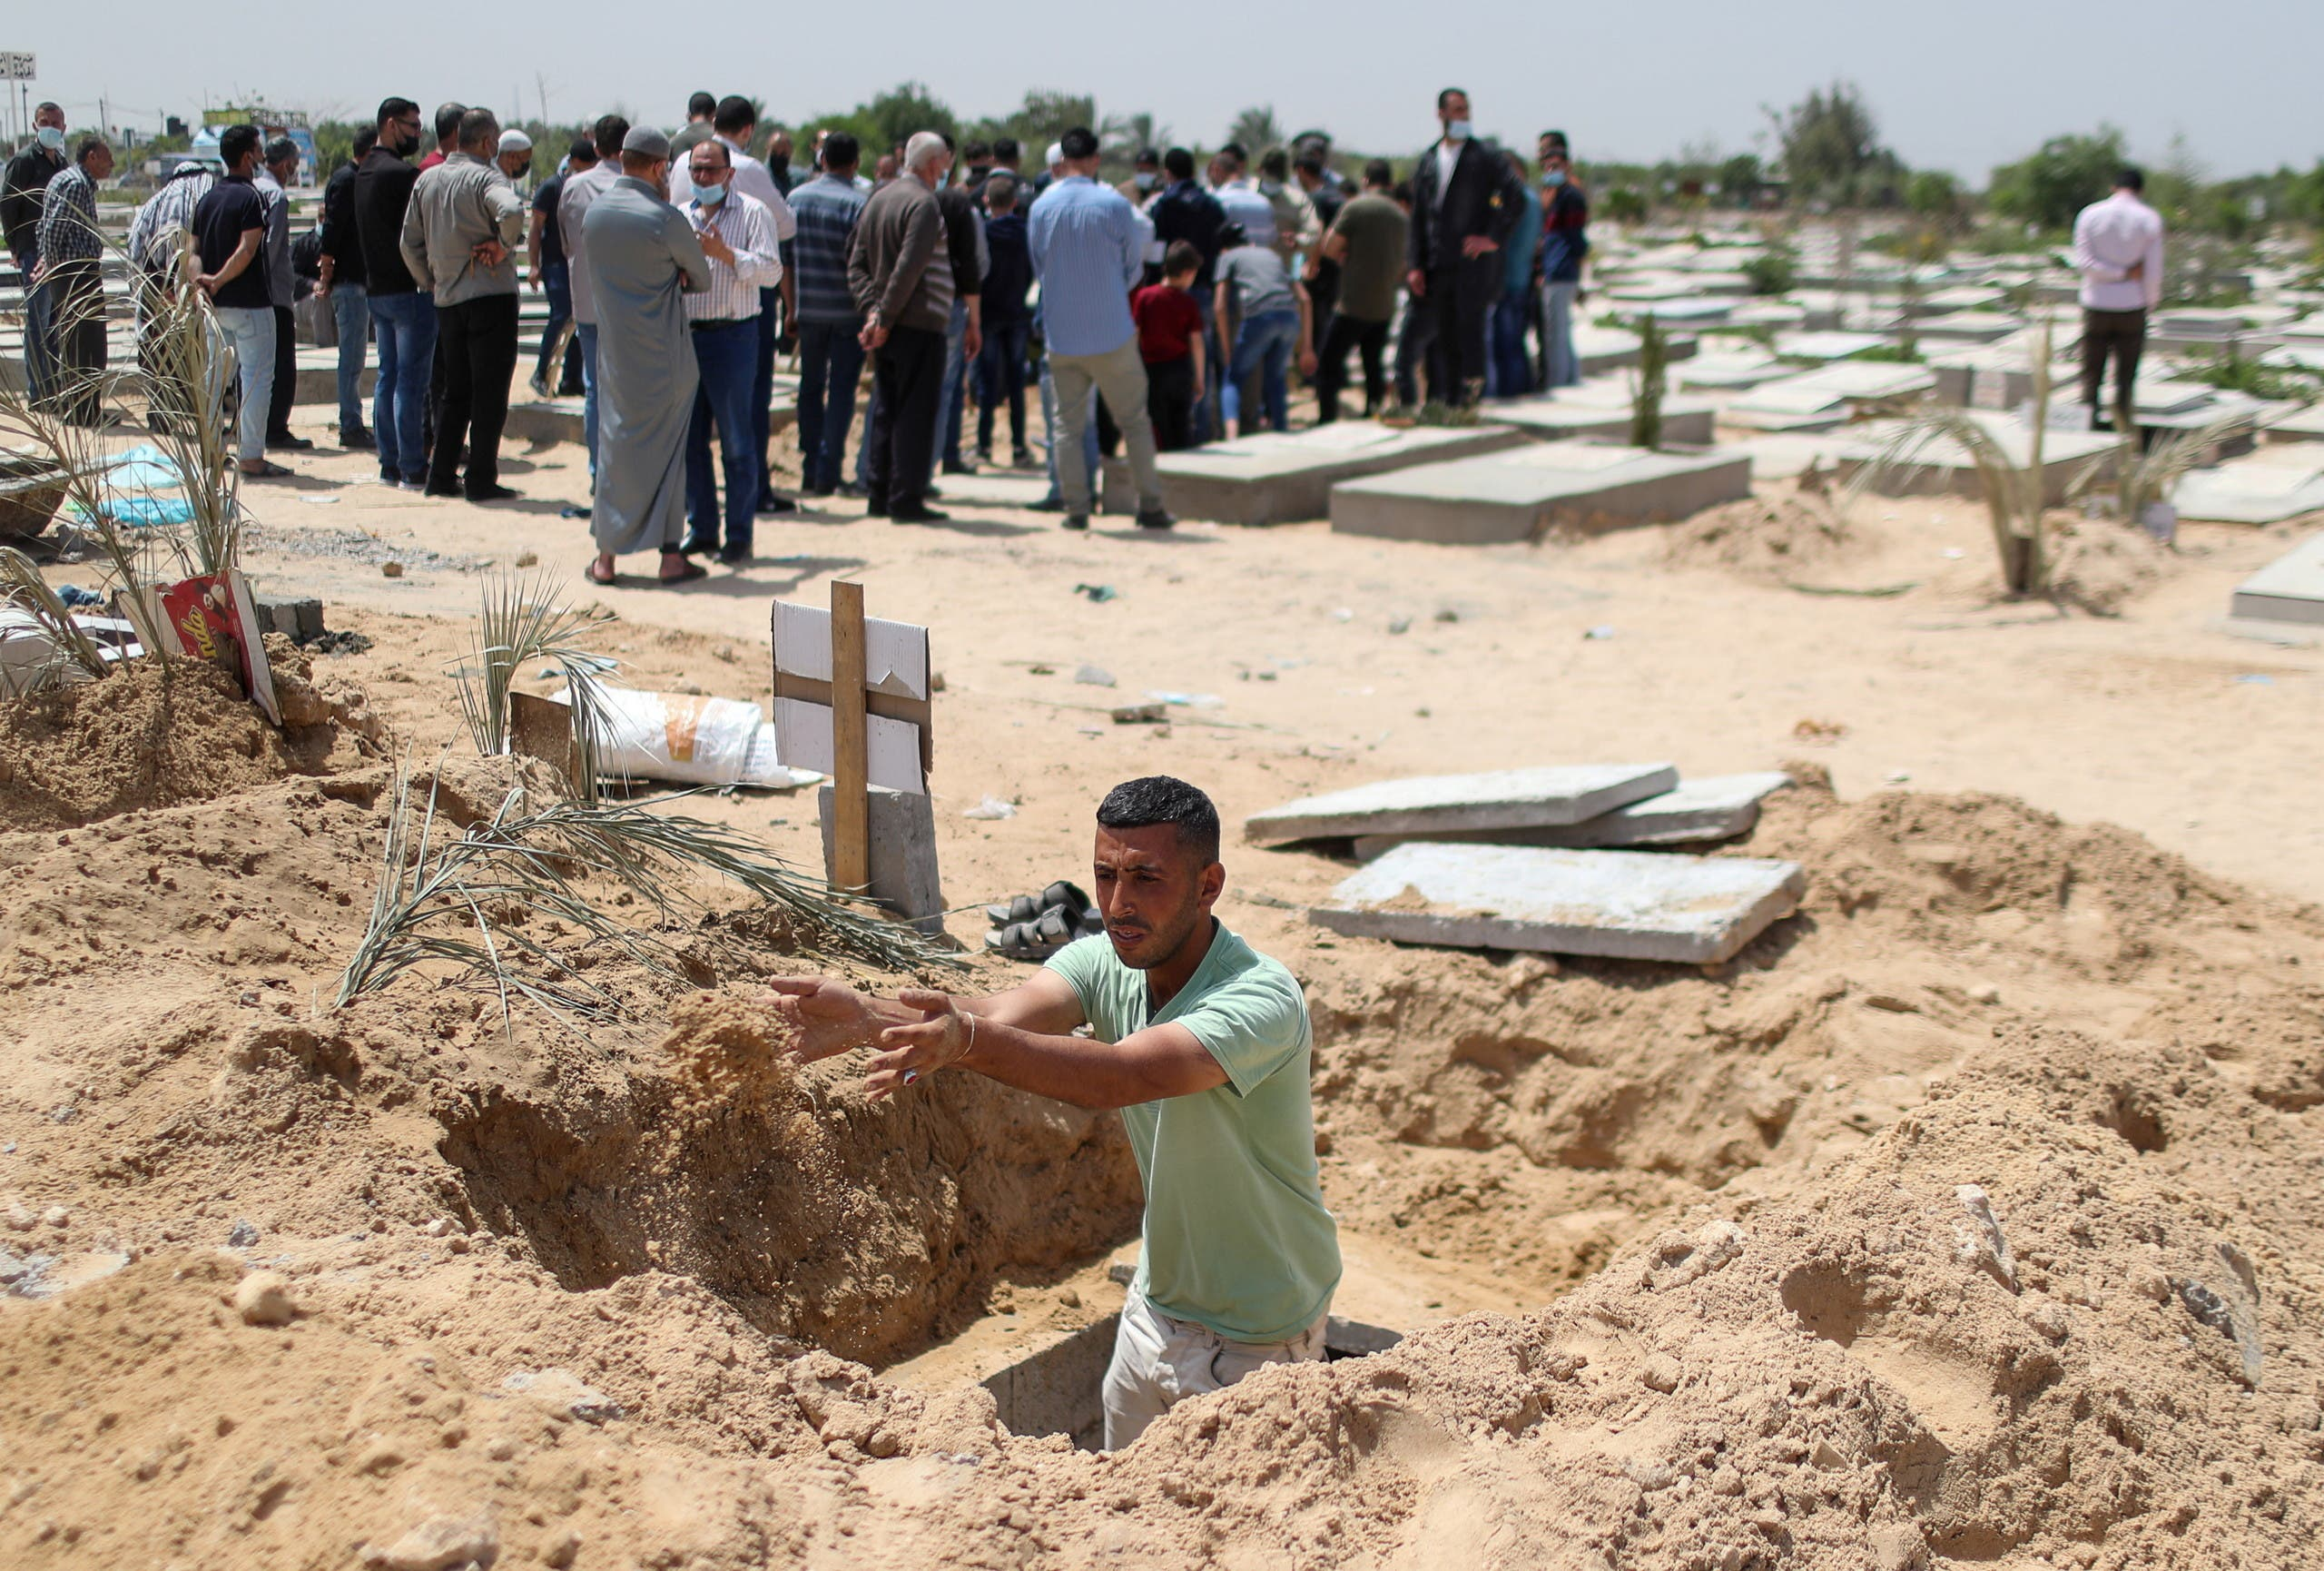 Palestinian worker Mohammad al-Haresh, 30, digs a grave for a coronavirus disease (COVID-19) victim, at a cemetery, east of Gaza City April 20, 2021. Picture taken April 20, 2021. (Reuters)